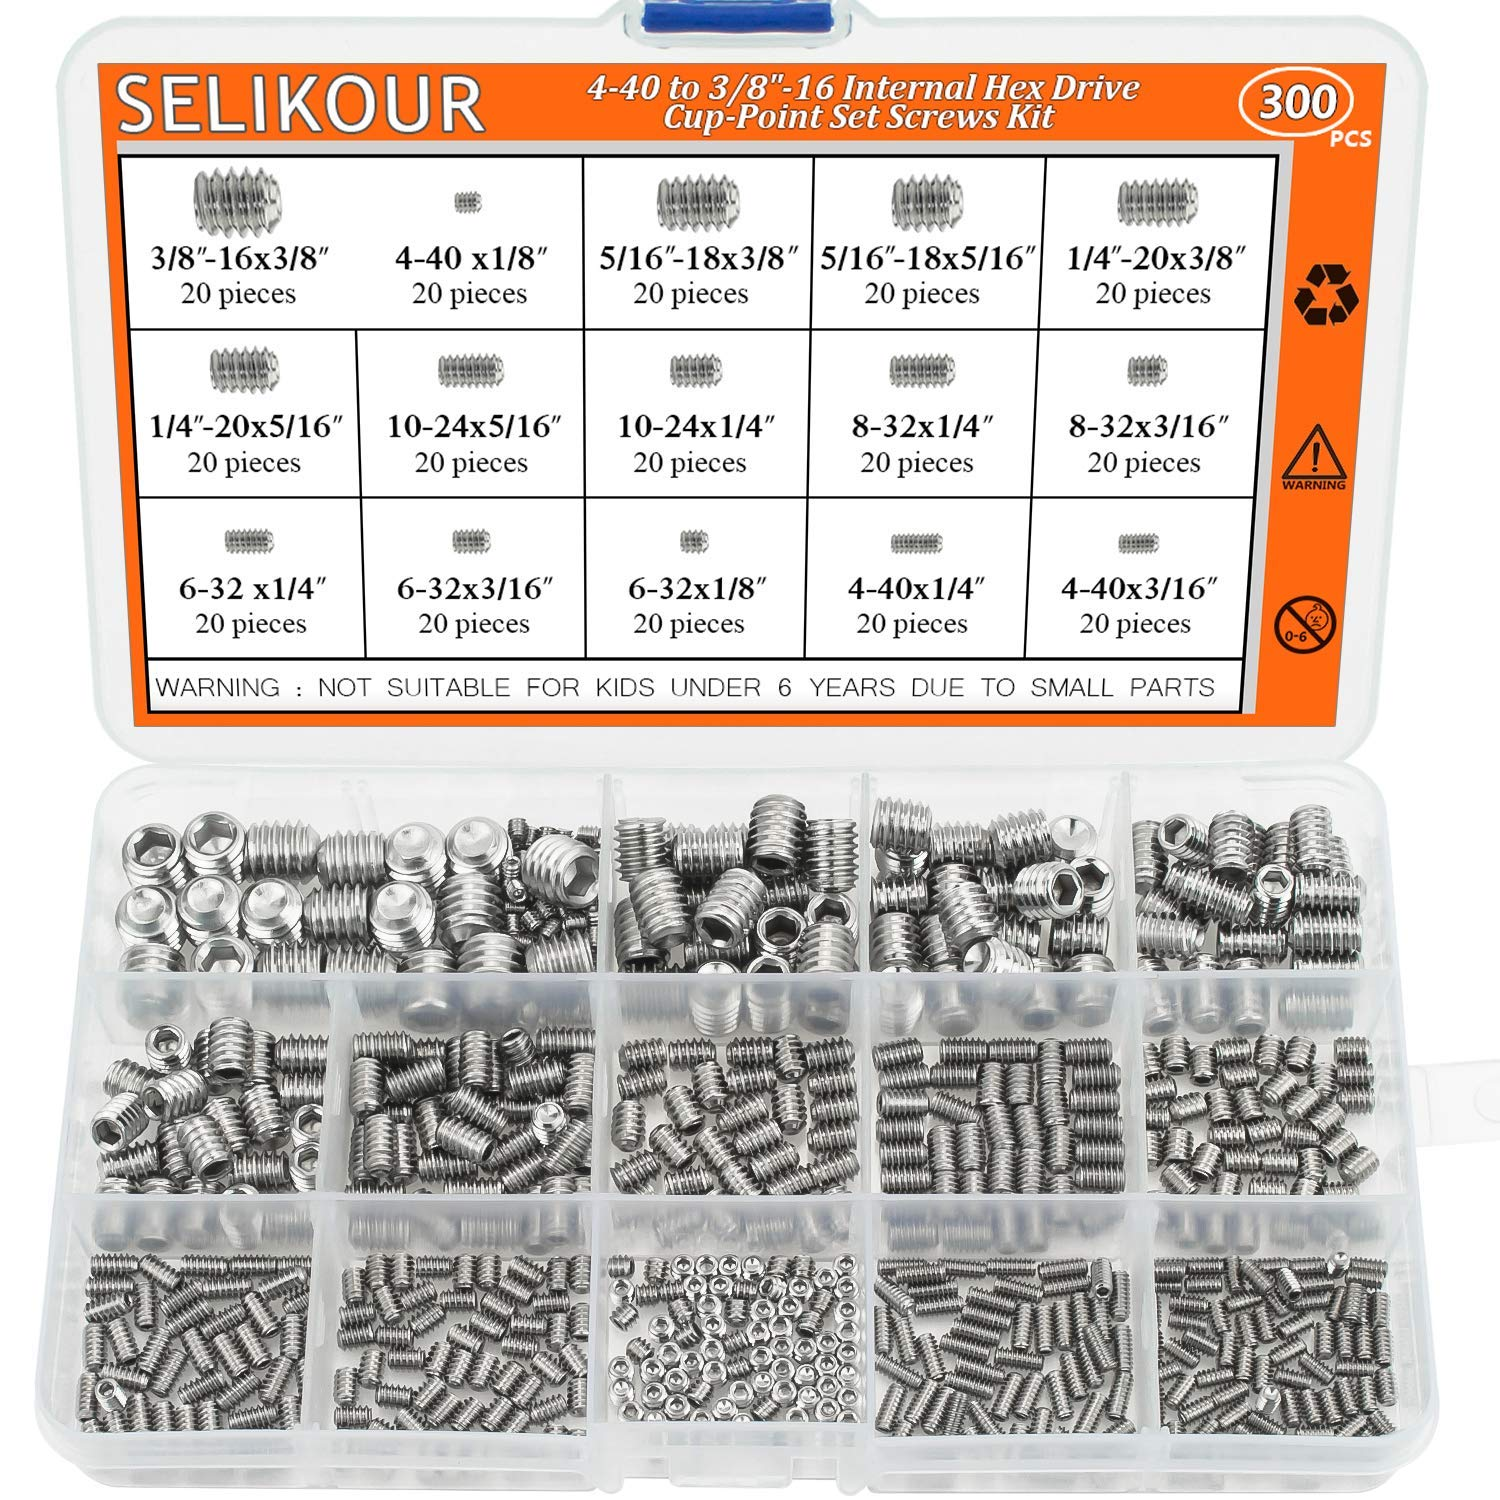 "SELIKOUR 4#-40 to 3/8""-16 Stainless Steel Internal Hex Drive Cup-Point Set Screws Assortment Kit"